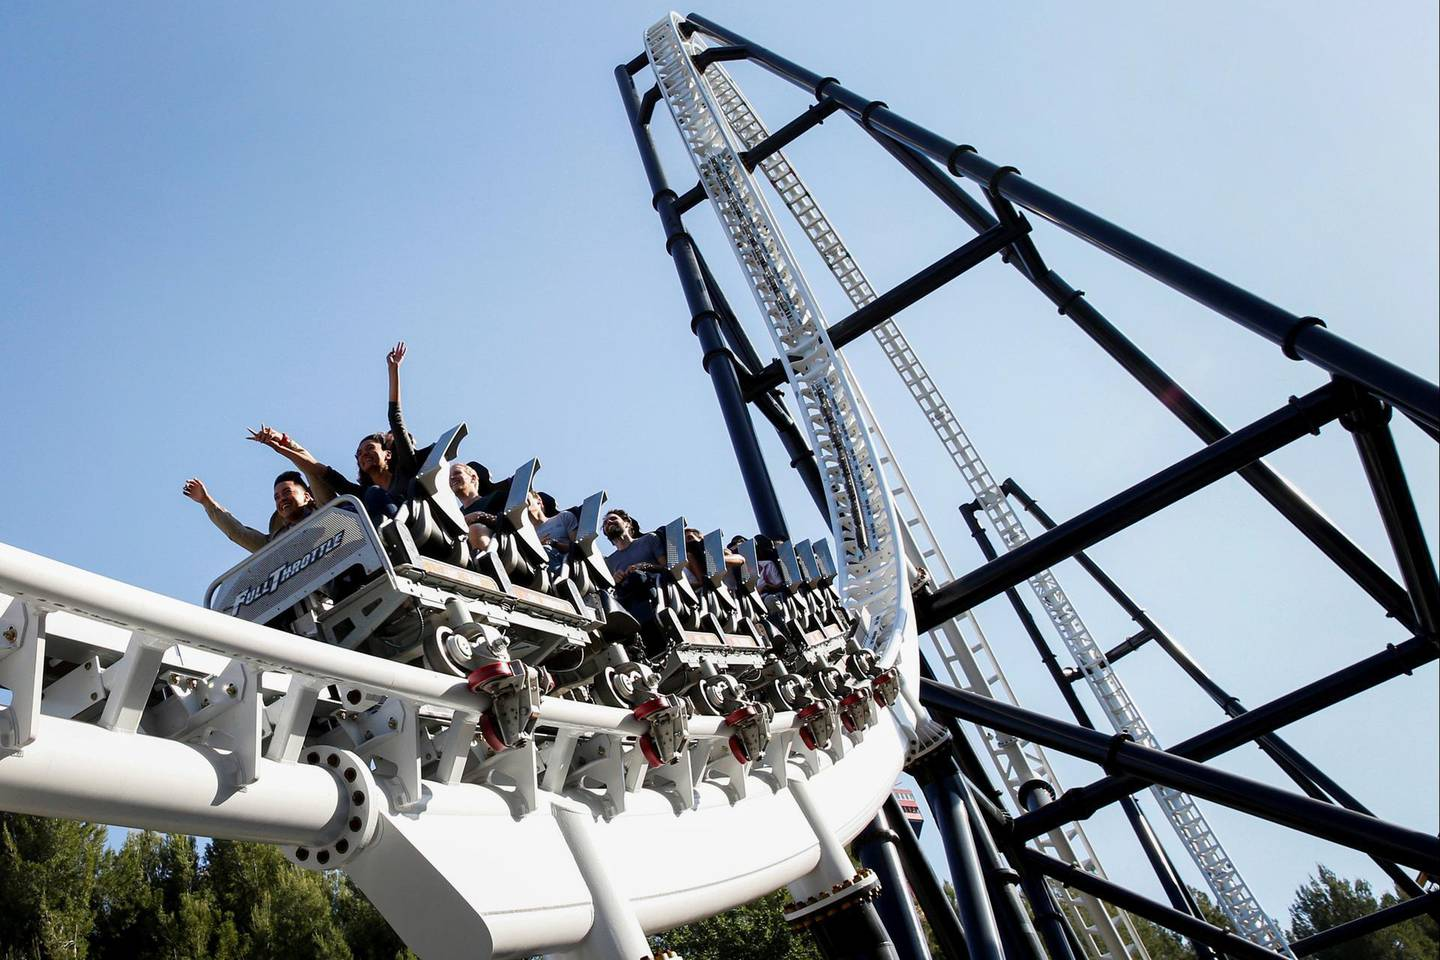 Visitors ride the Full Throttle roller coaster at Six Flags Magic Mountain in Valencia, California, U.S., on Monday, April 20, 2015. Six Flags Entertainment Corp. is scheduled to release earnings figures on April 22. Photographer: Patrick T. Fallon/Bloomberg